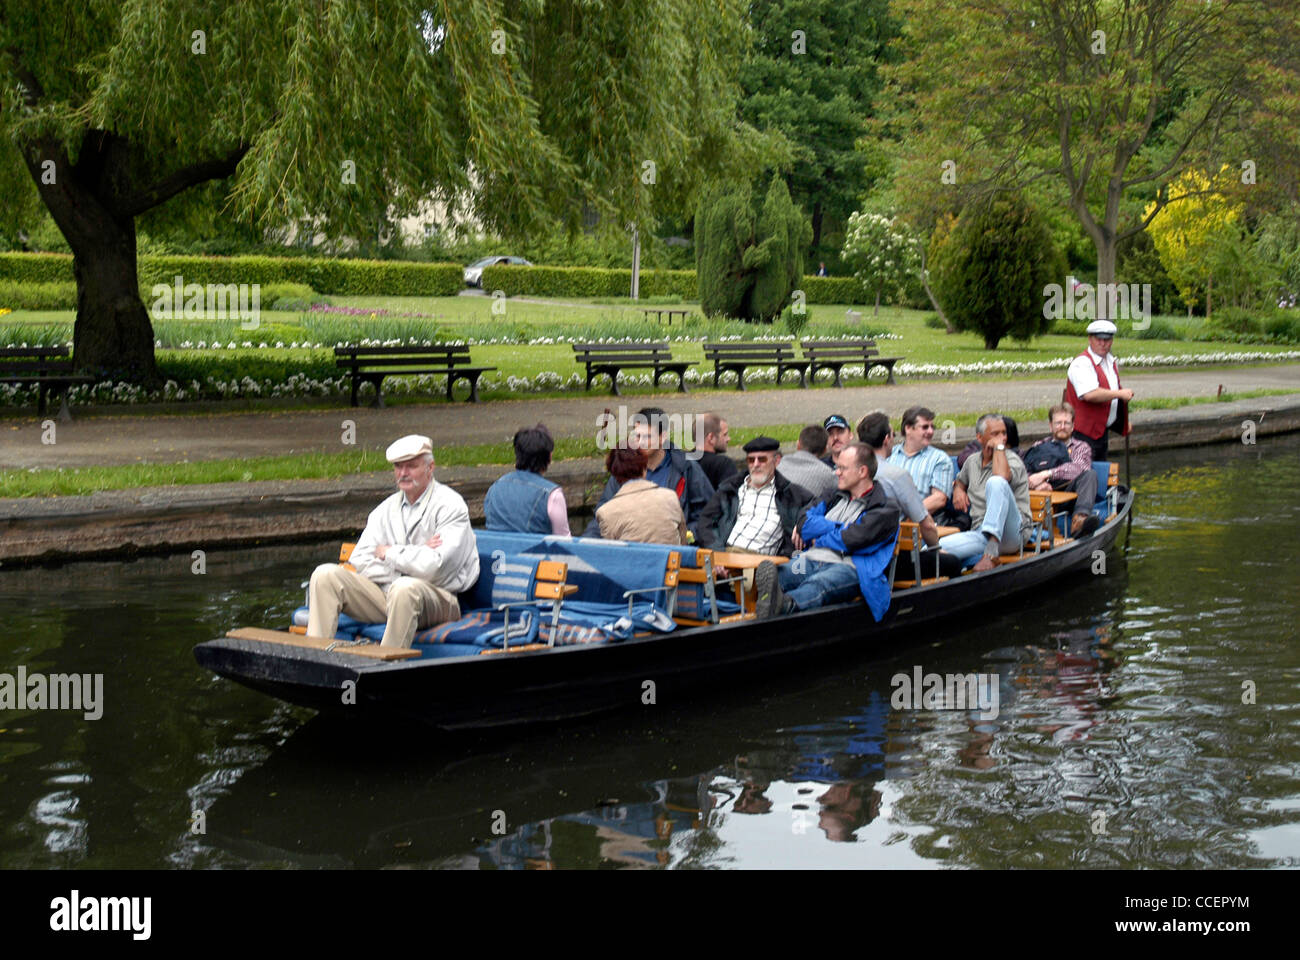 Boat trip in the Spreewald near Luebbenau. - Stock Image